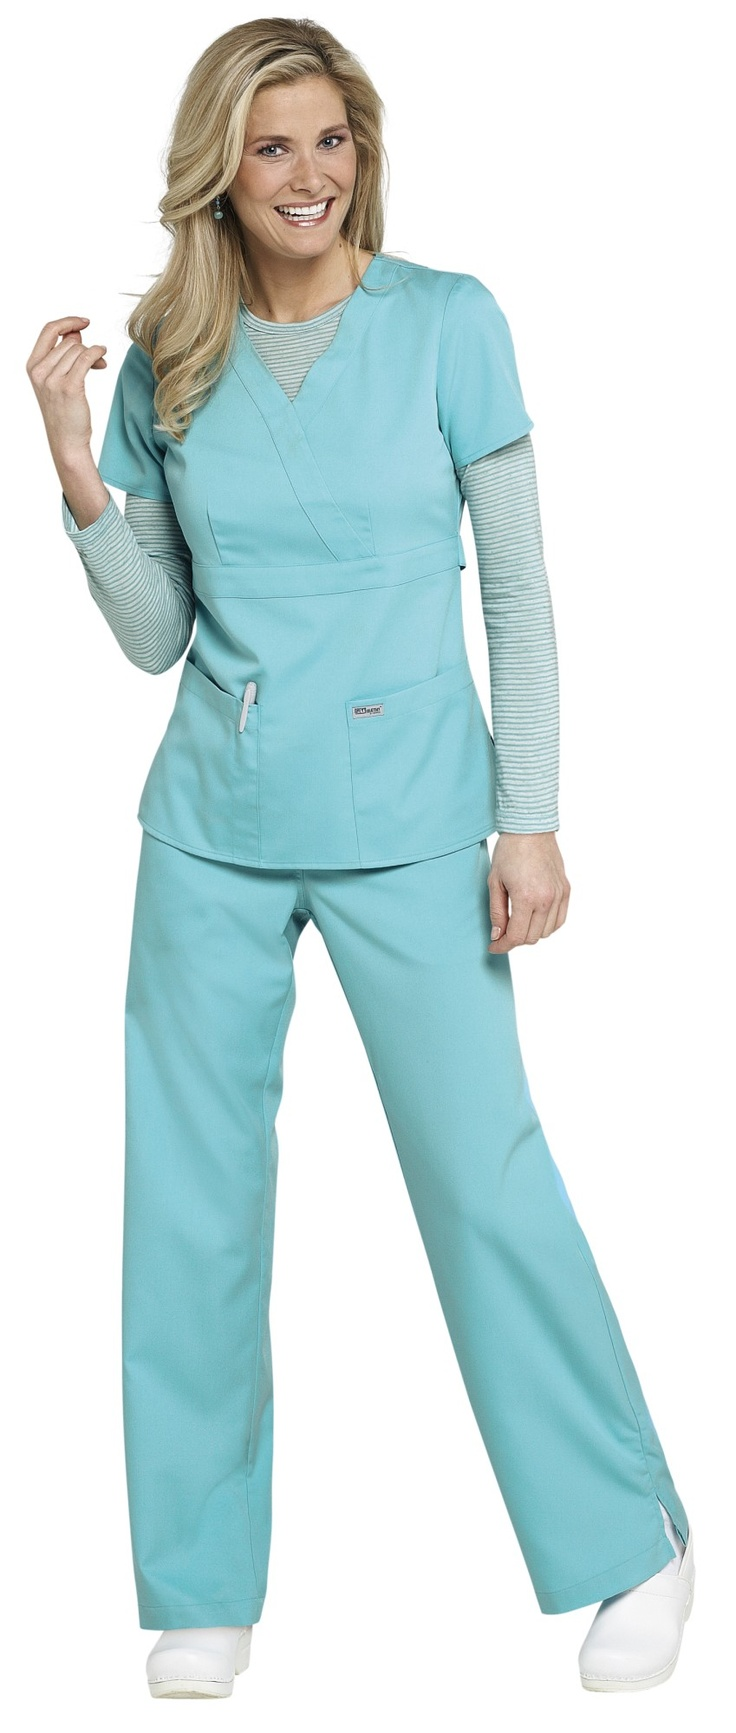 28 best ~SCRUBS~ images on Pinterest | Medical scrubs, Scrub life ...